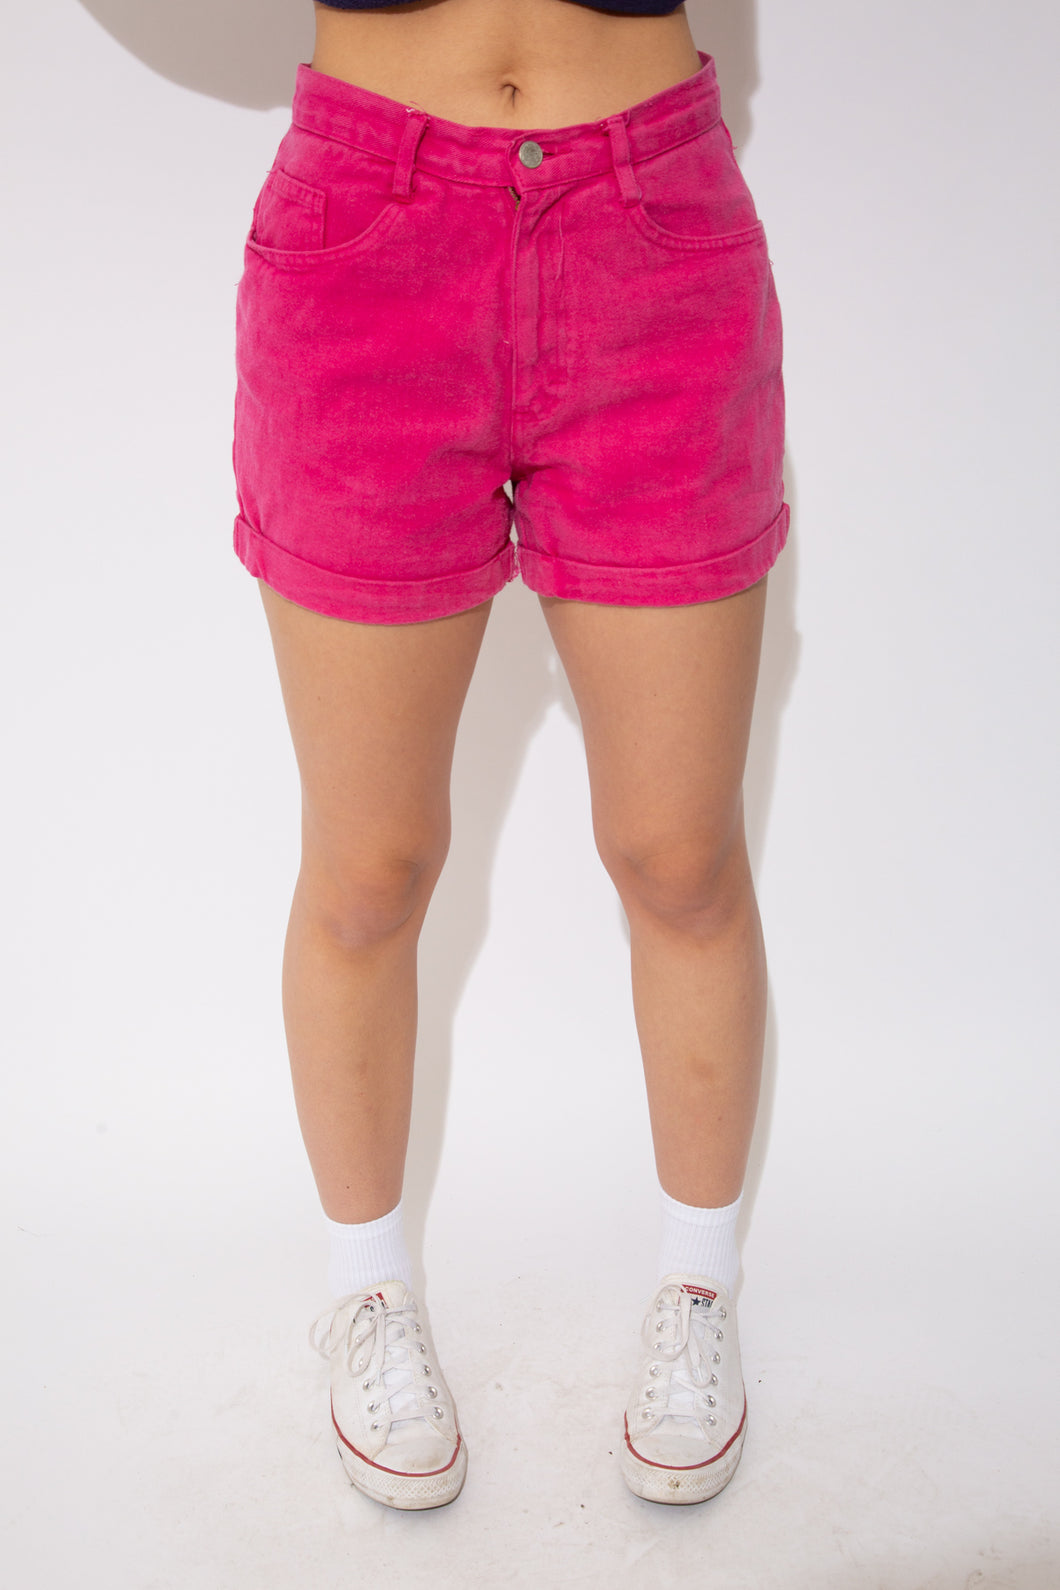 Model wearing Miami shorts, magichollow